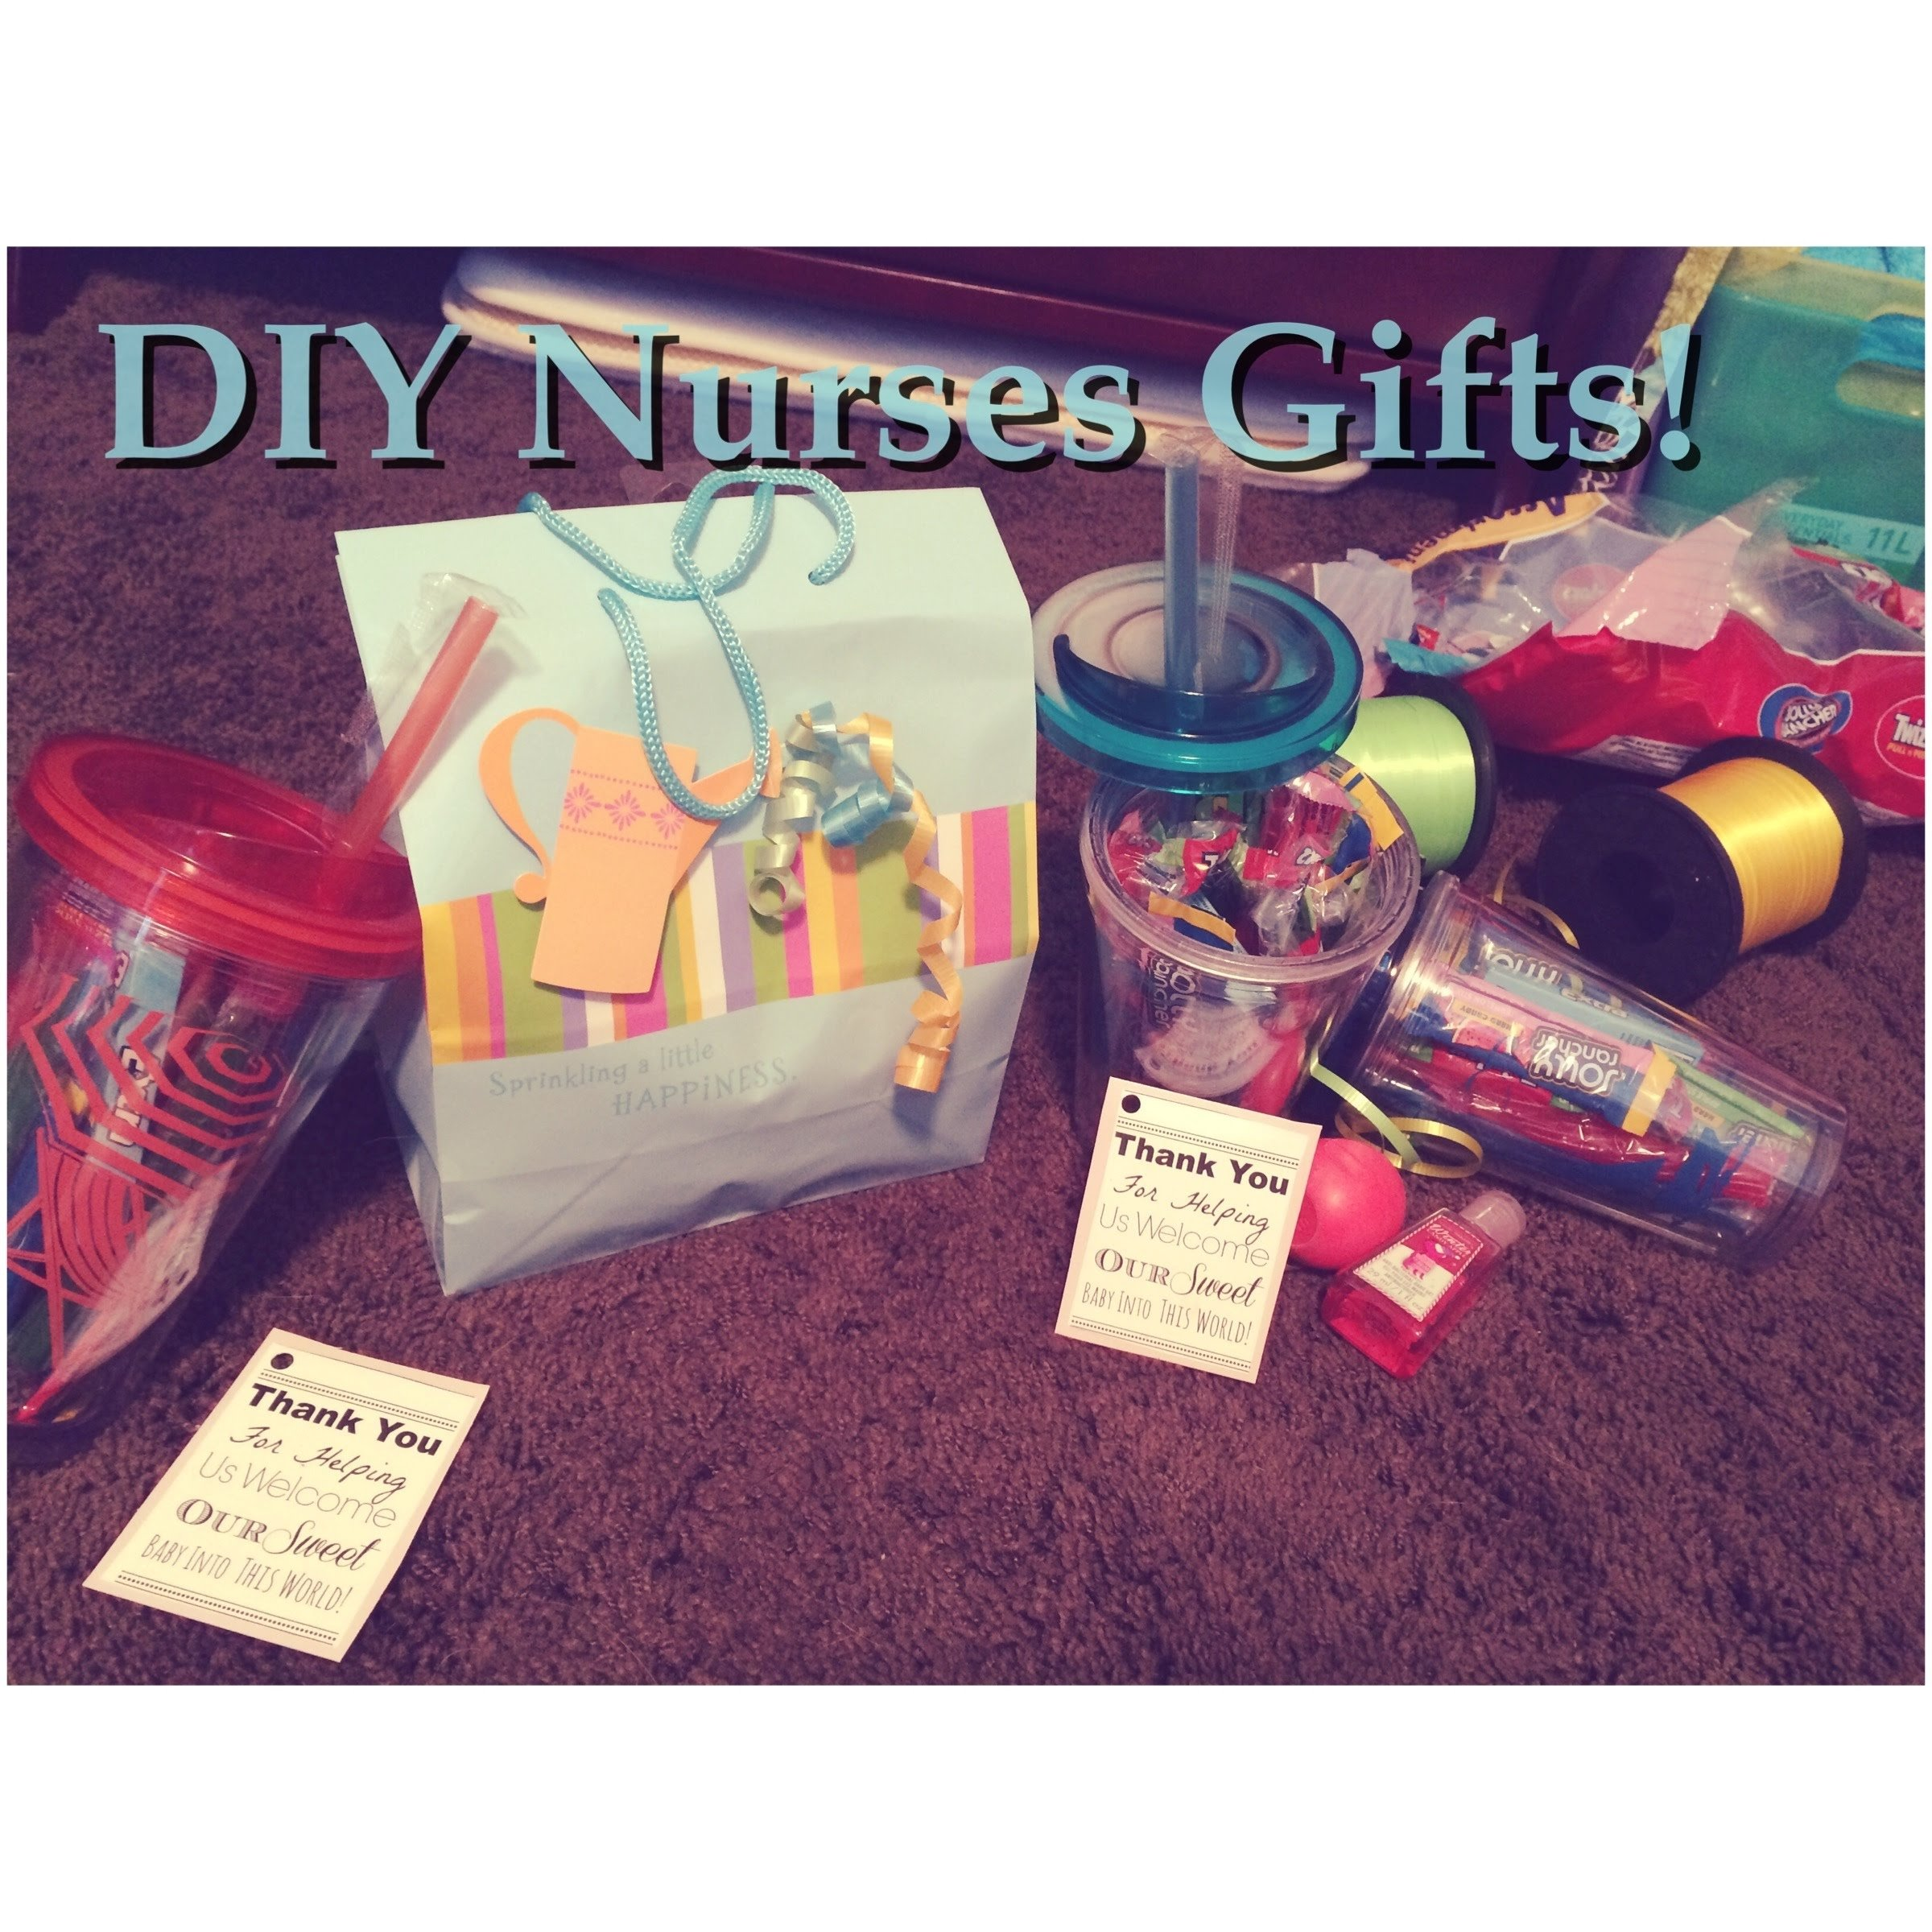 10 Awesome Gift Ideas For Nursing Students diy nurses gifts youtube 2020